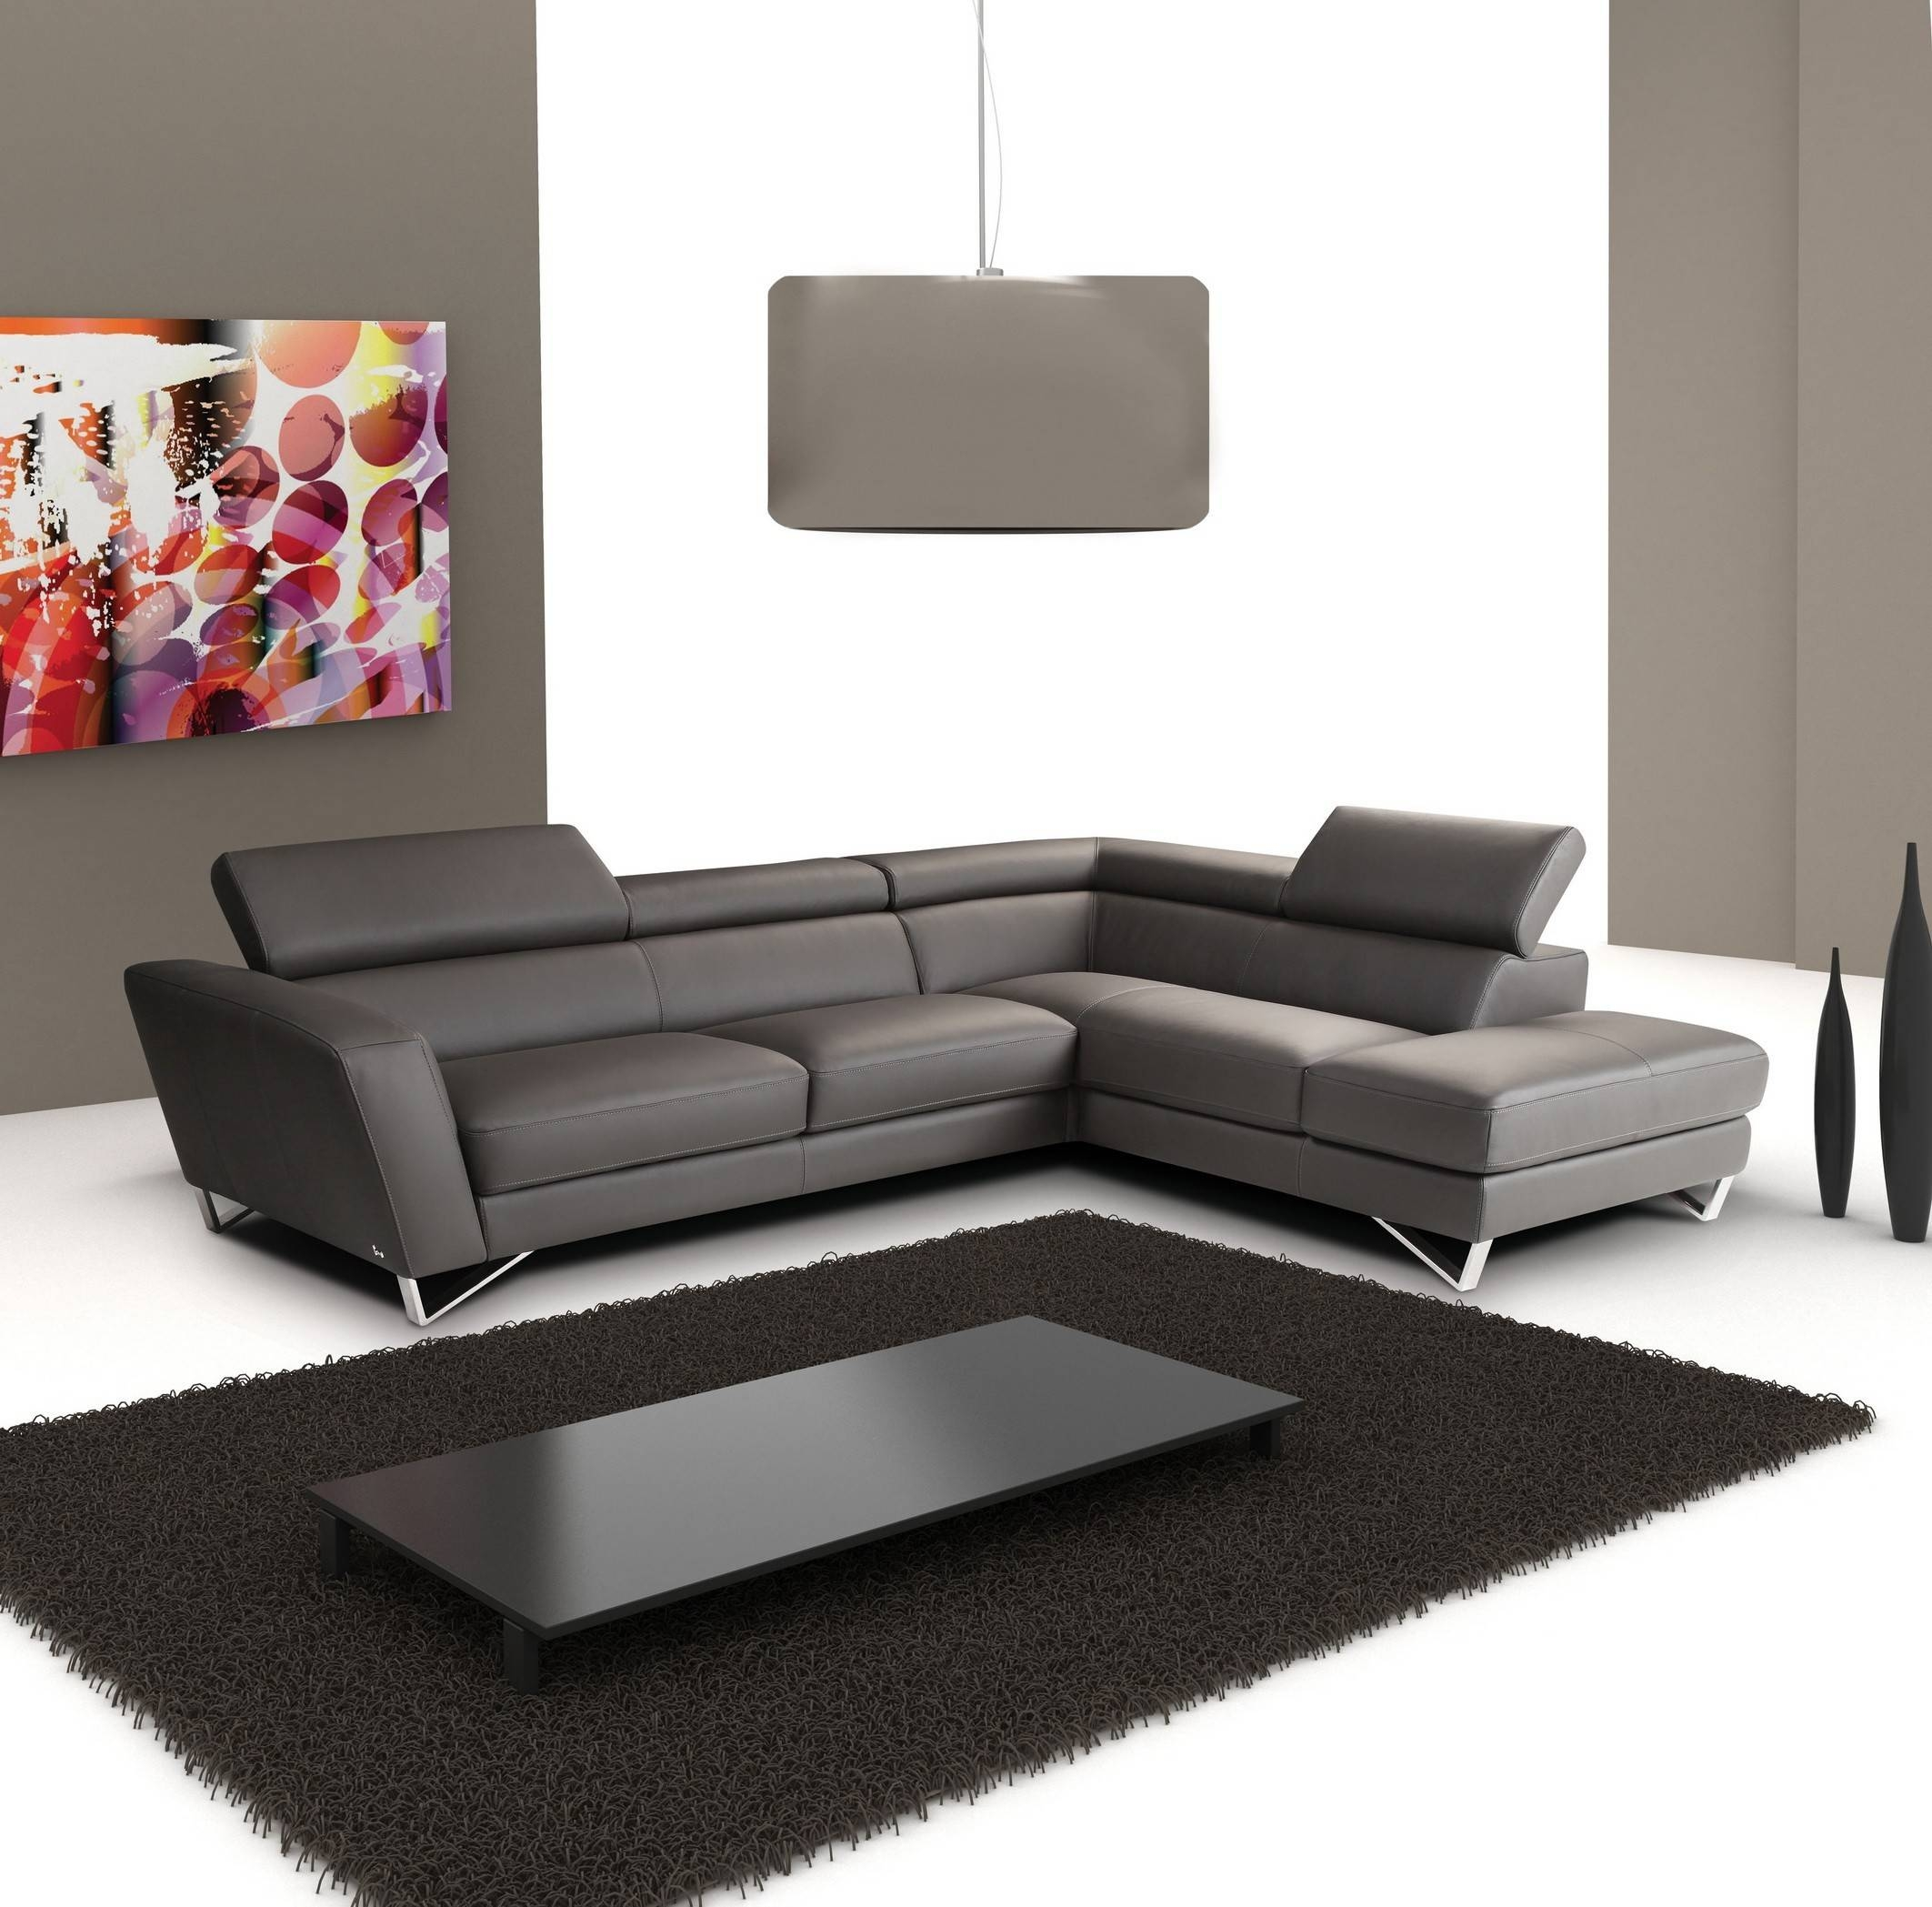 Agreeable Table Of Easy Inspirational Home Decorating With L intended for L Shaped Coffee Tables (Image 1 of 30)